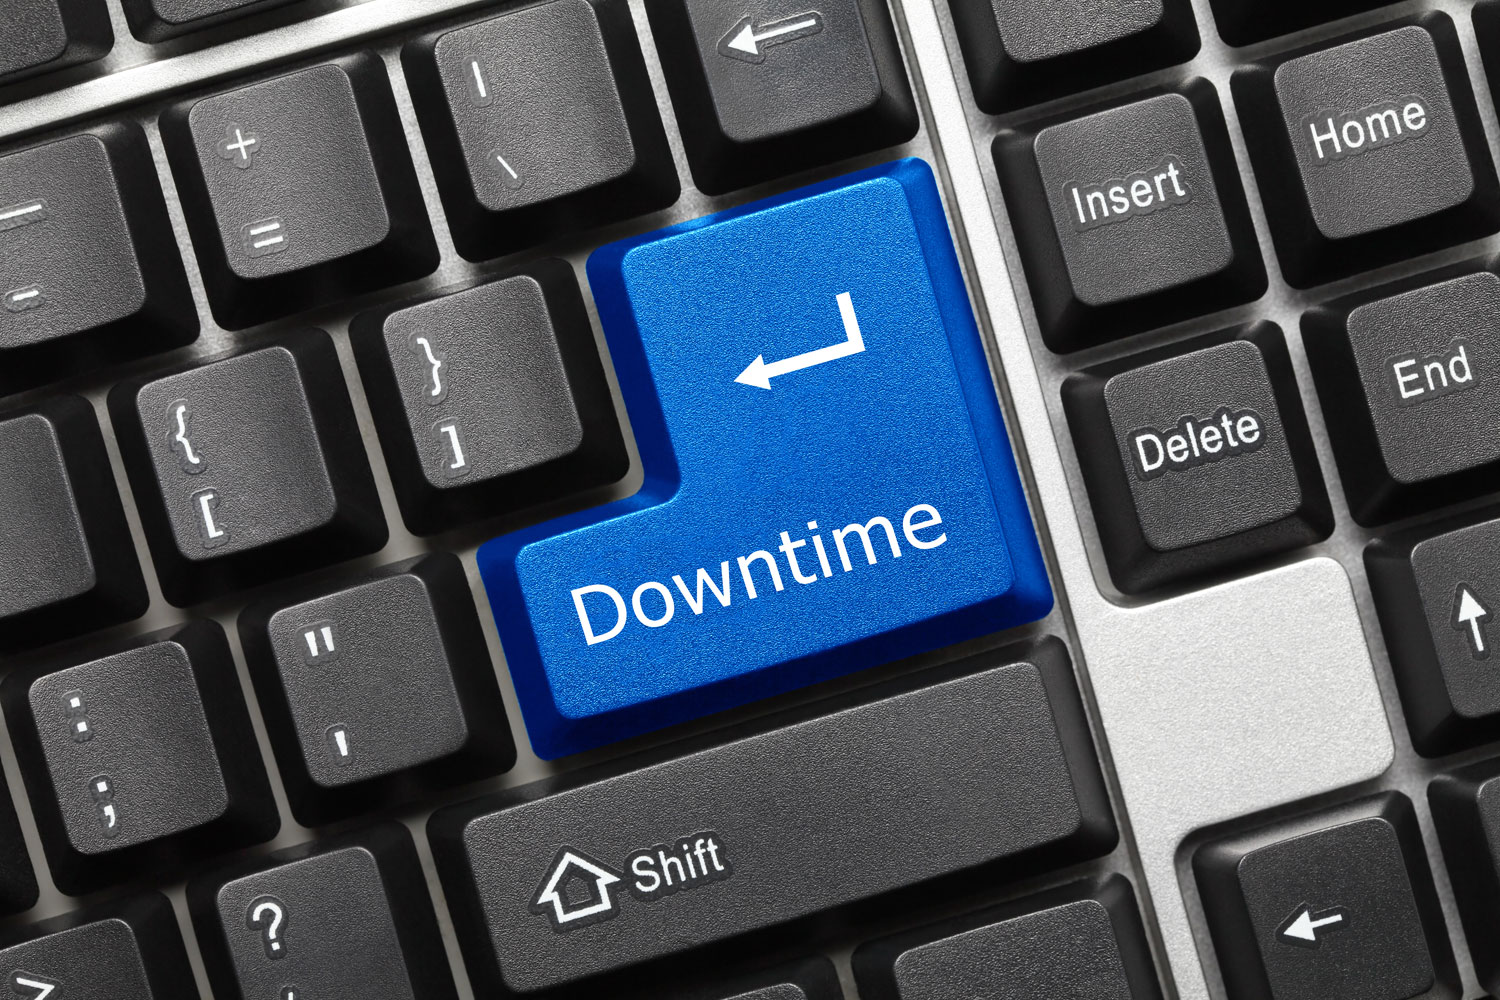 keyboard with downtime key